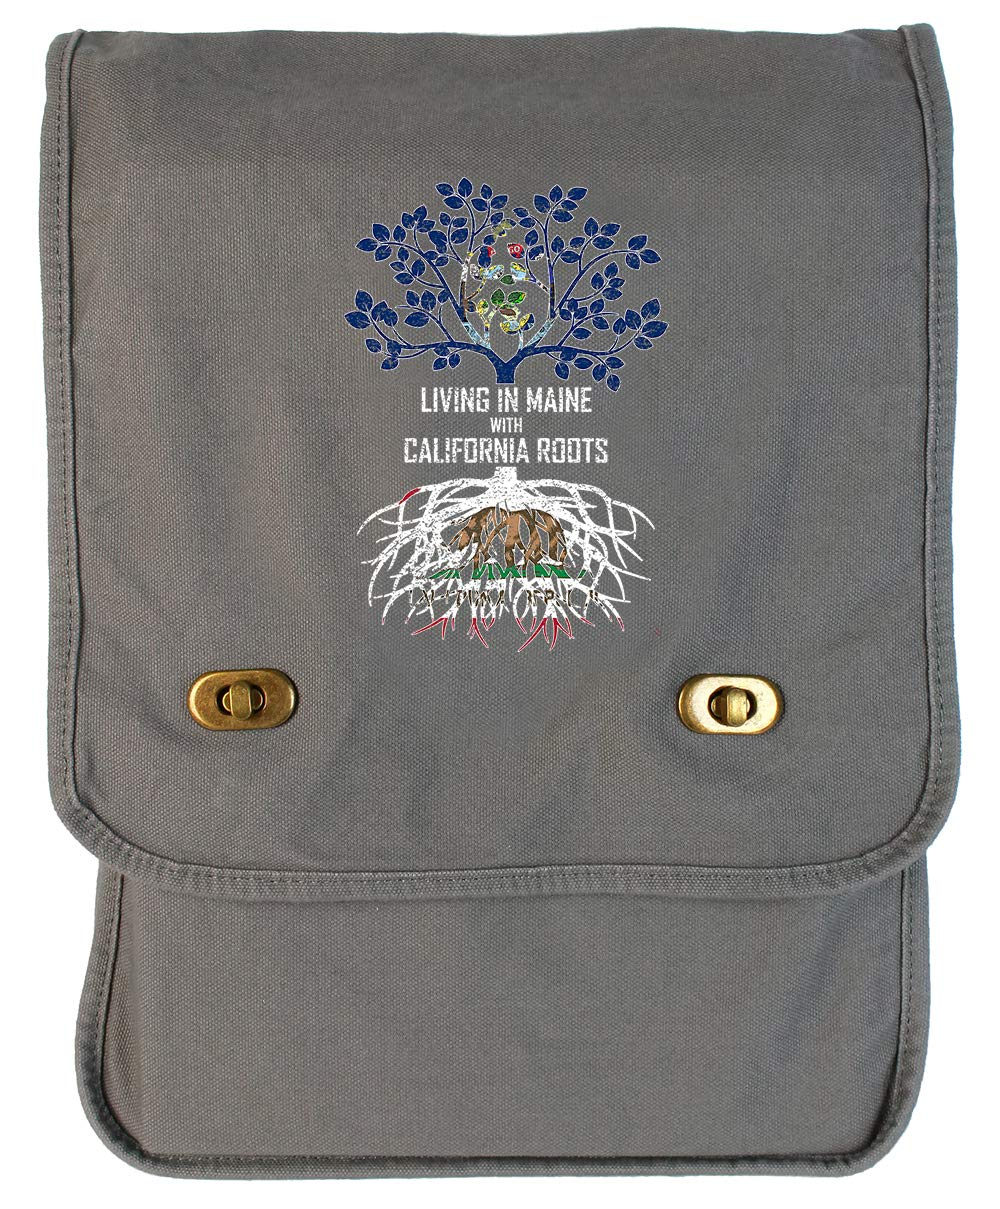 Tenacitee Living In Maine with California Roots Grey Brushed Canvas Messenger Bag